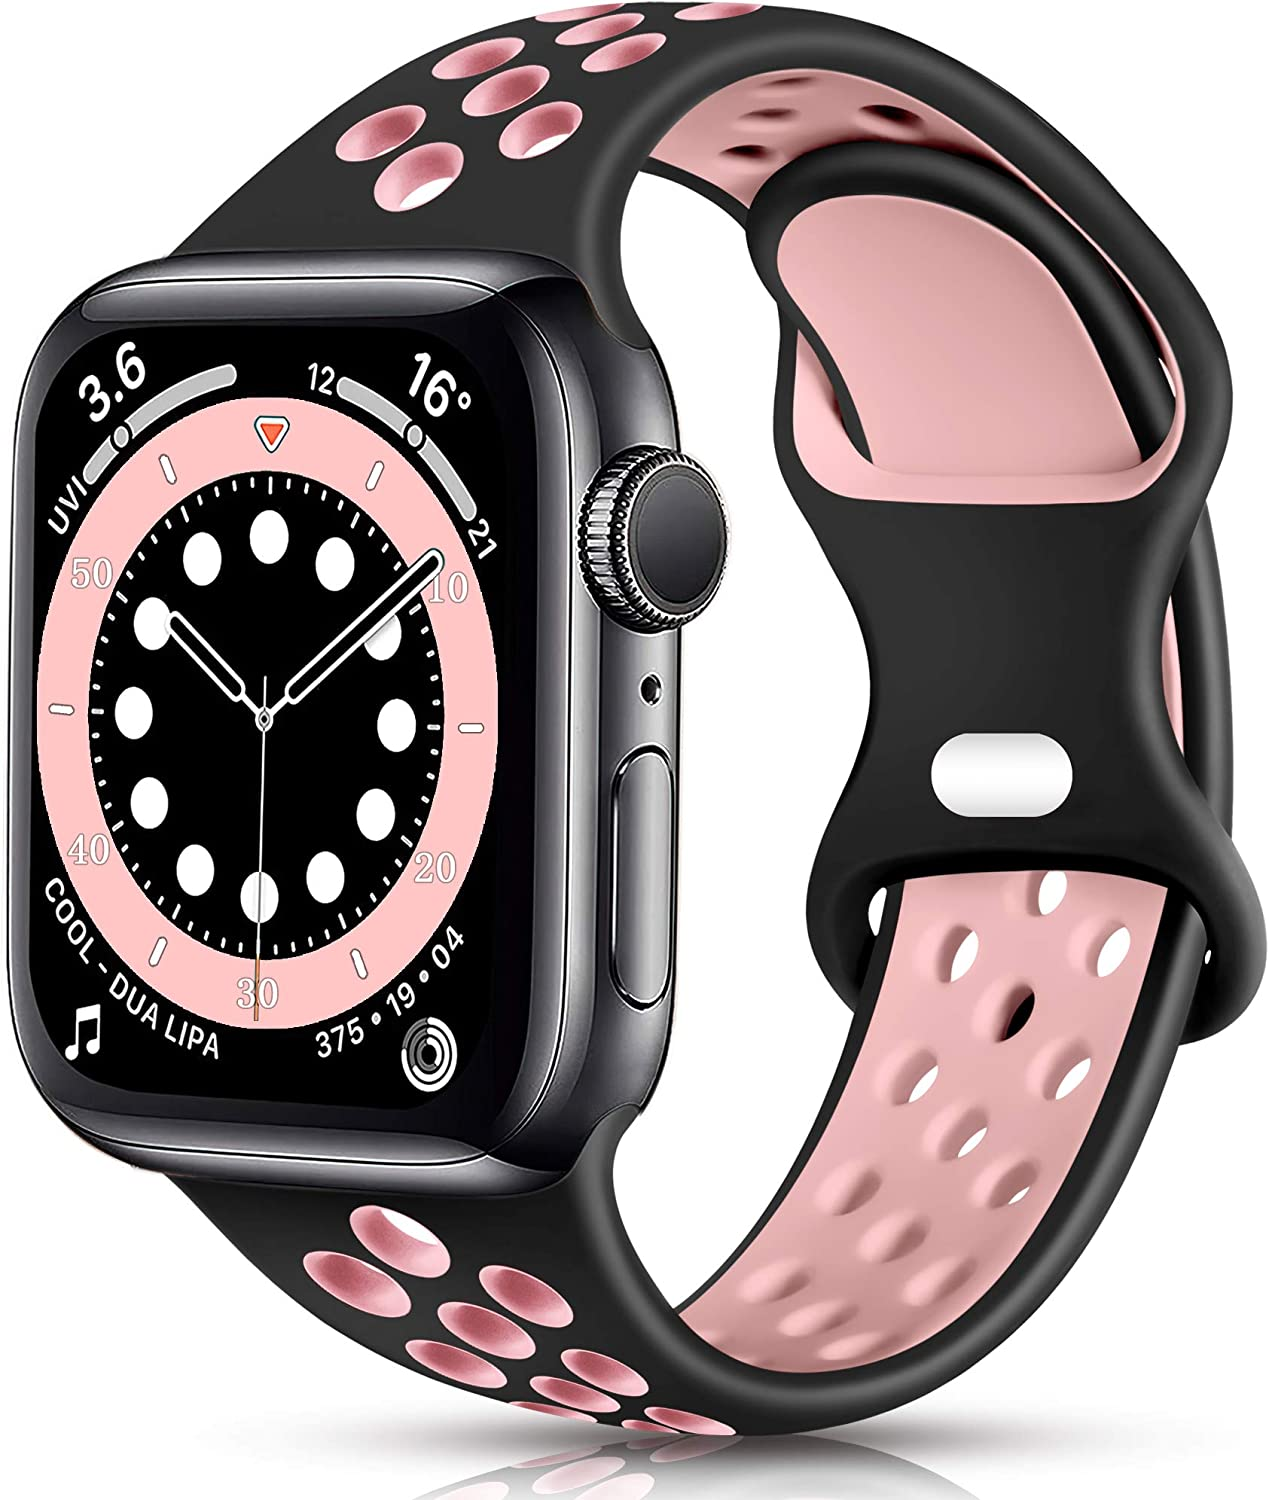 Sport Band Compatible with Apple Watch 38mm 40mm 42mm 44mm Women Men, Breathable Silicone Replacement Wristband for iWatch SE Series 1/2/3/4/5/6